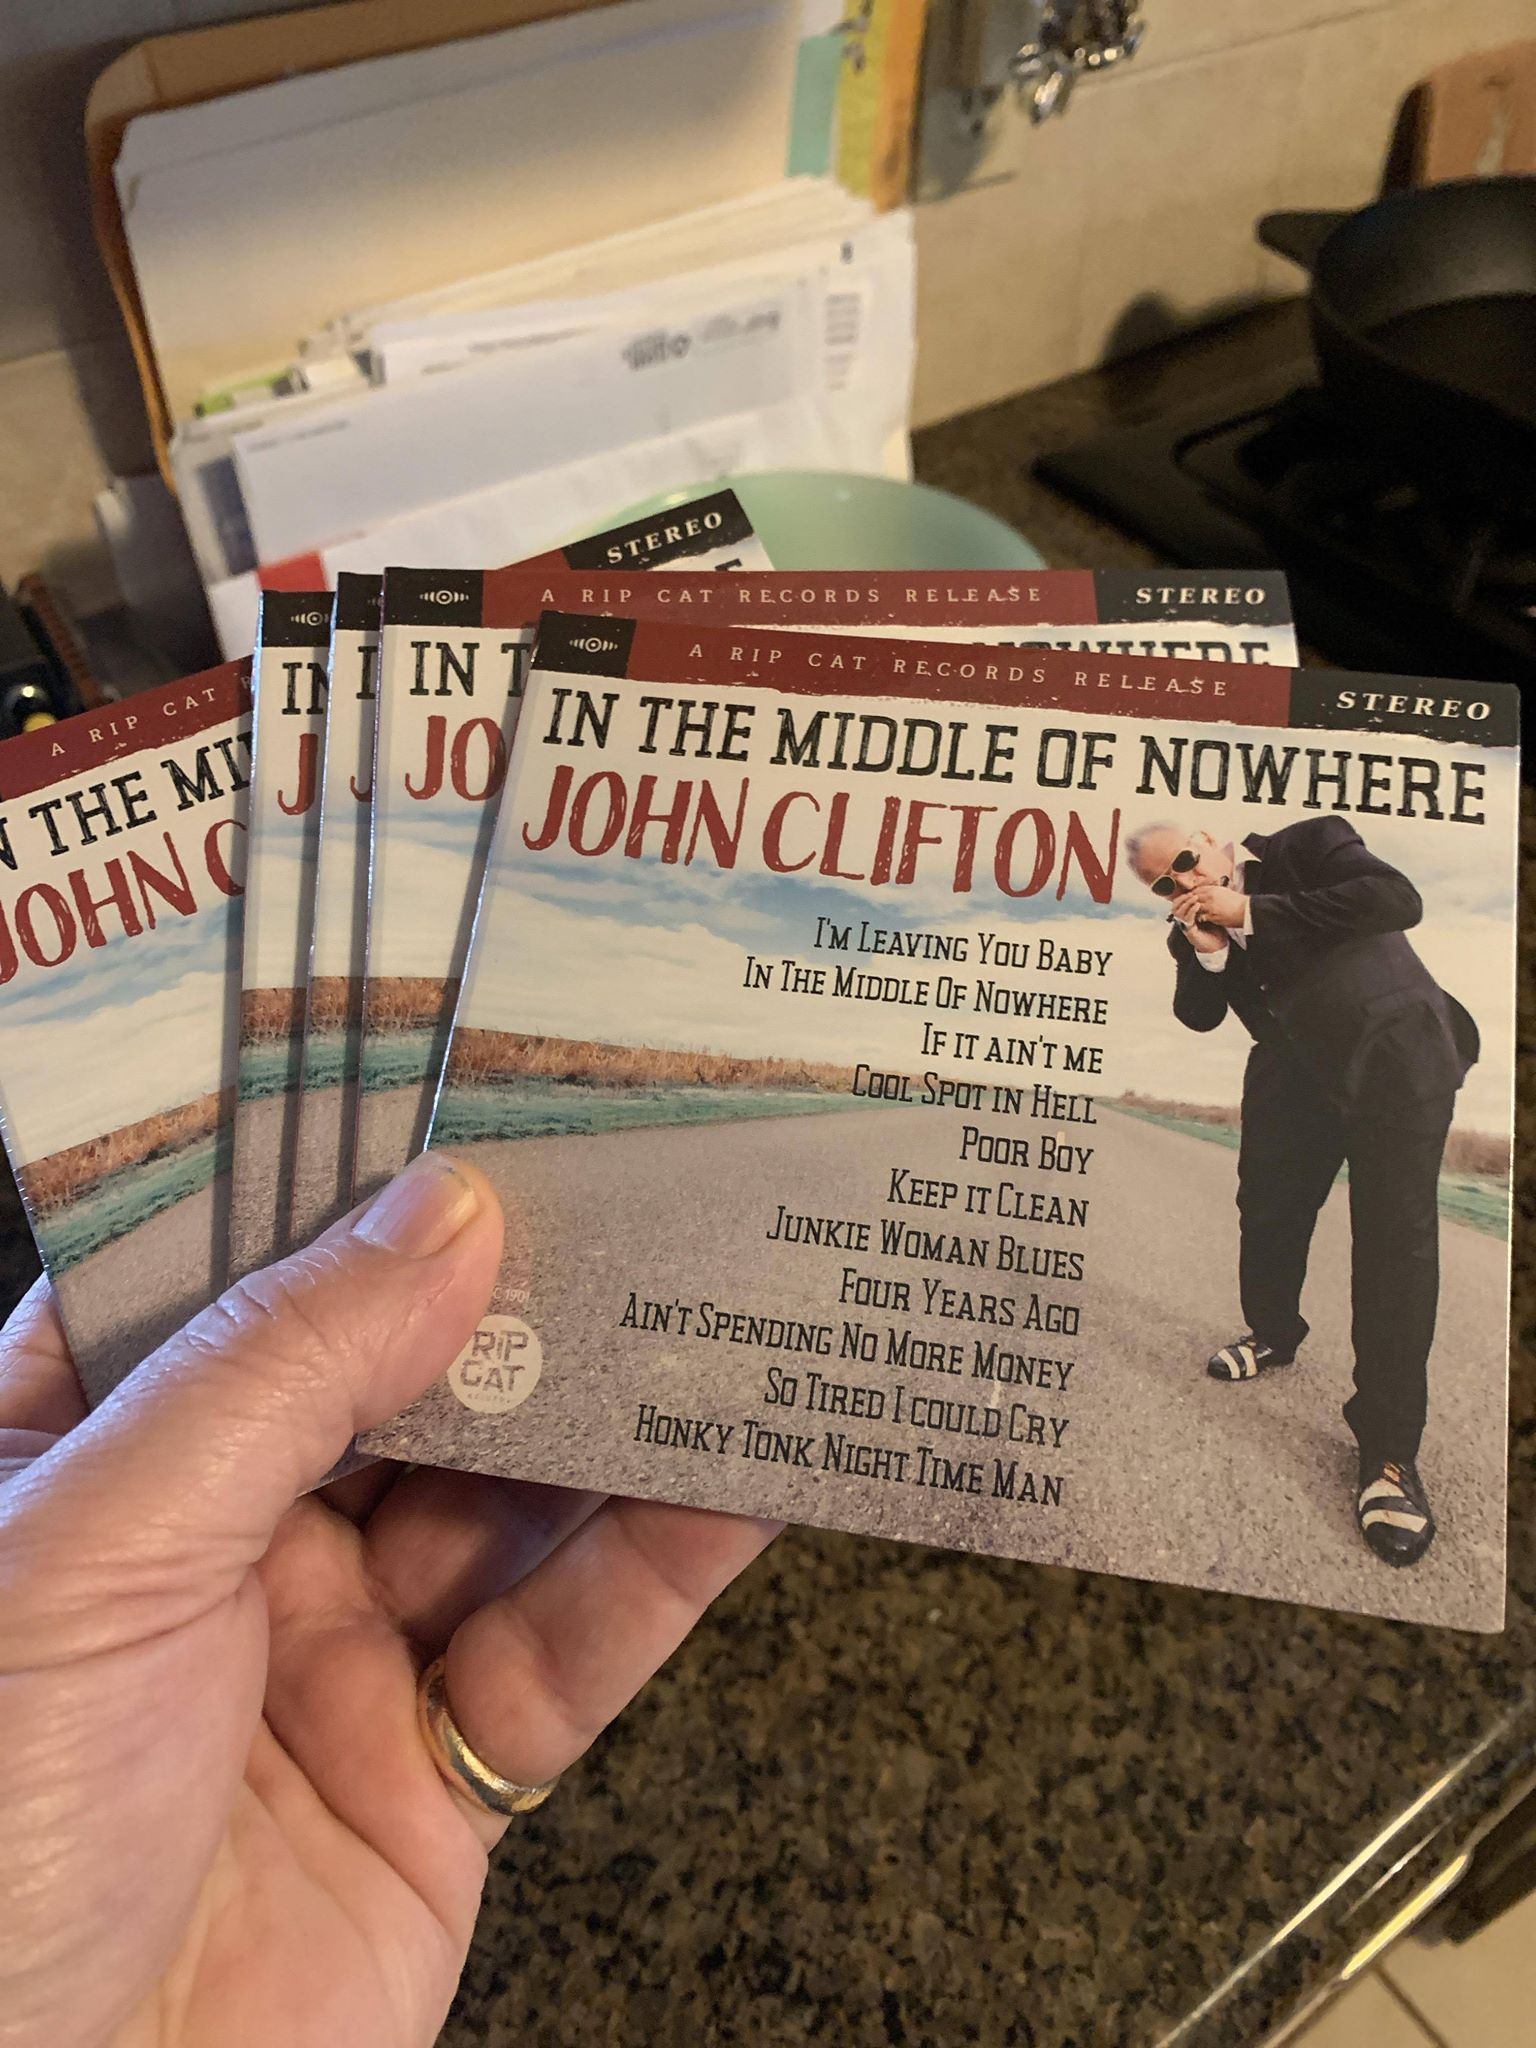 John Clifton's CDs, held in his own hand, Photos & Cover Design by Rick Horowitz Photography